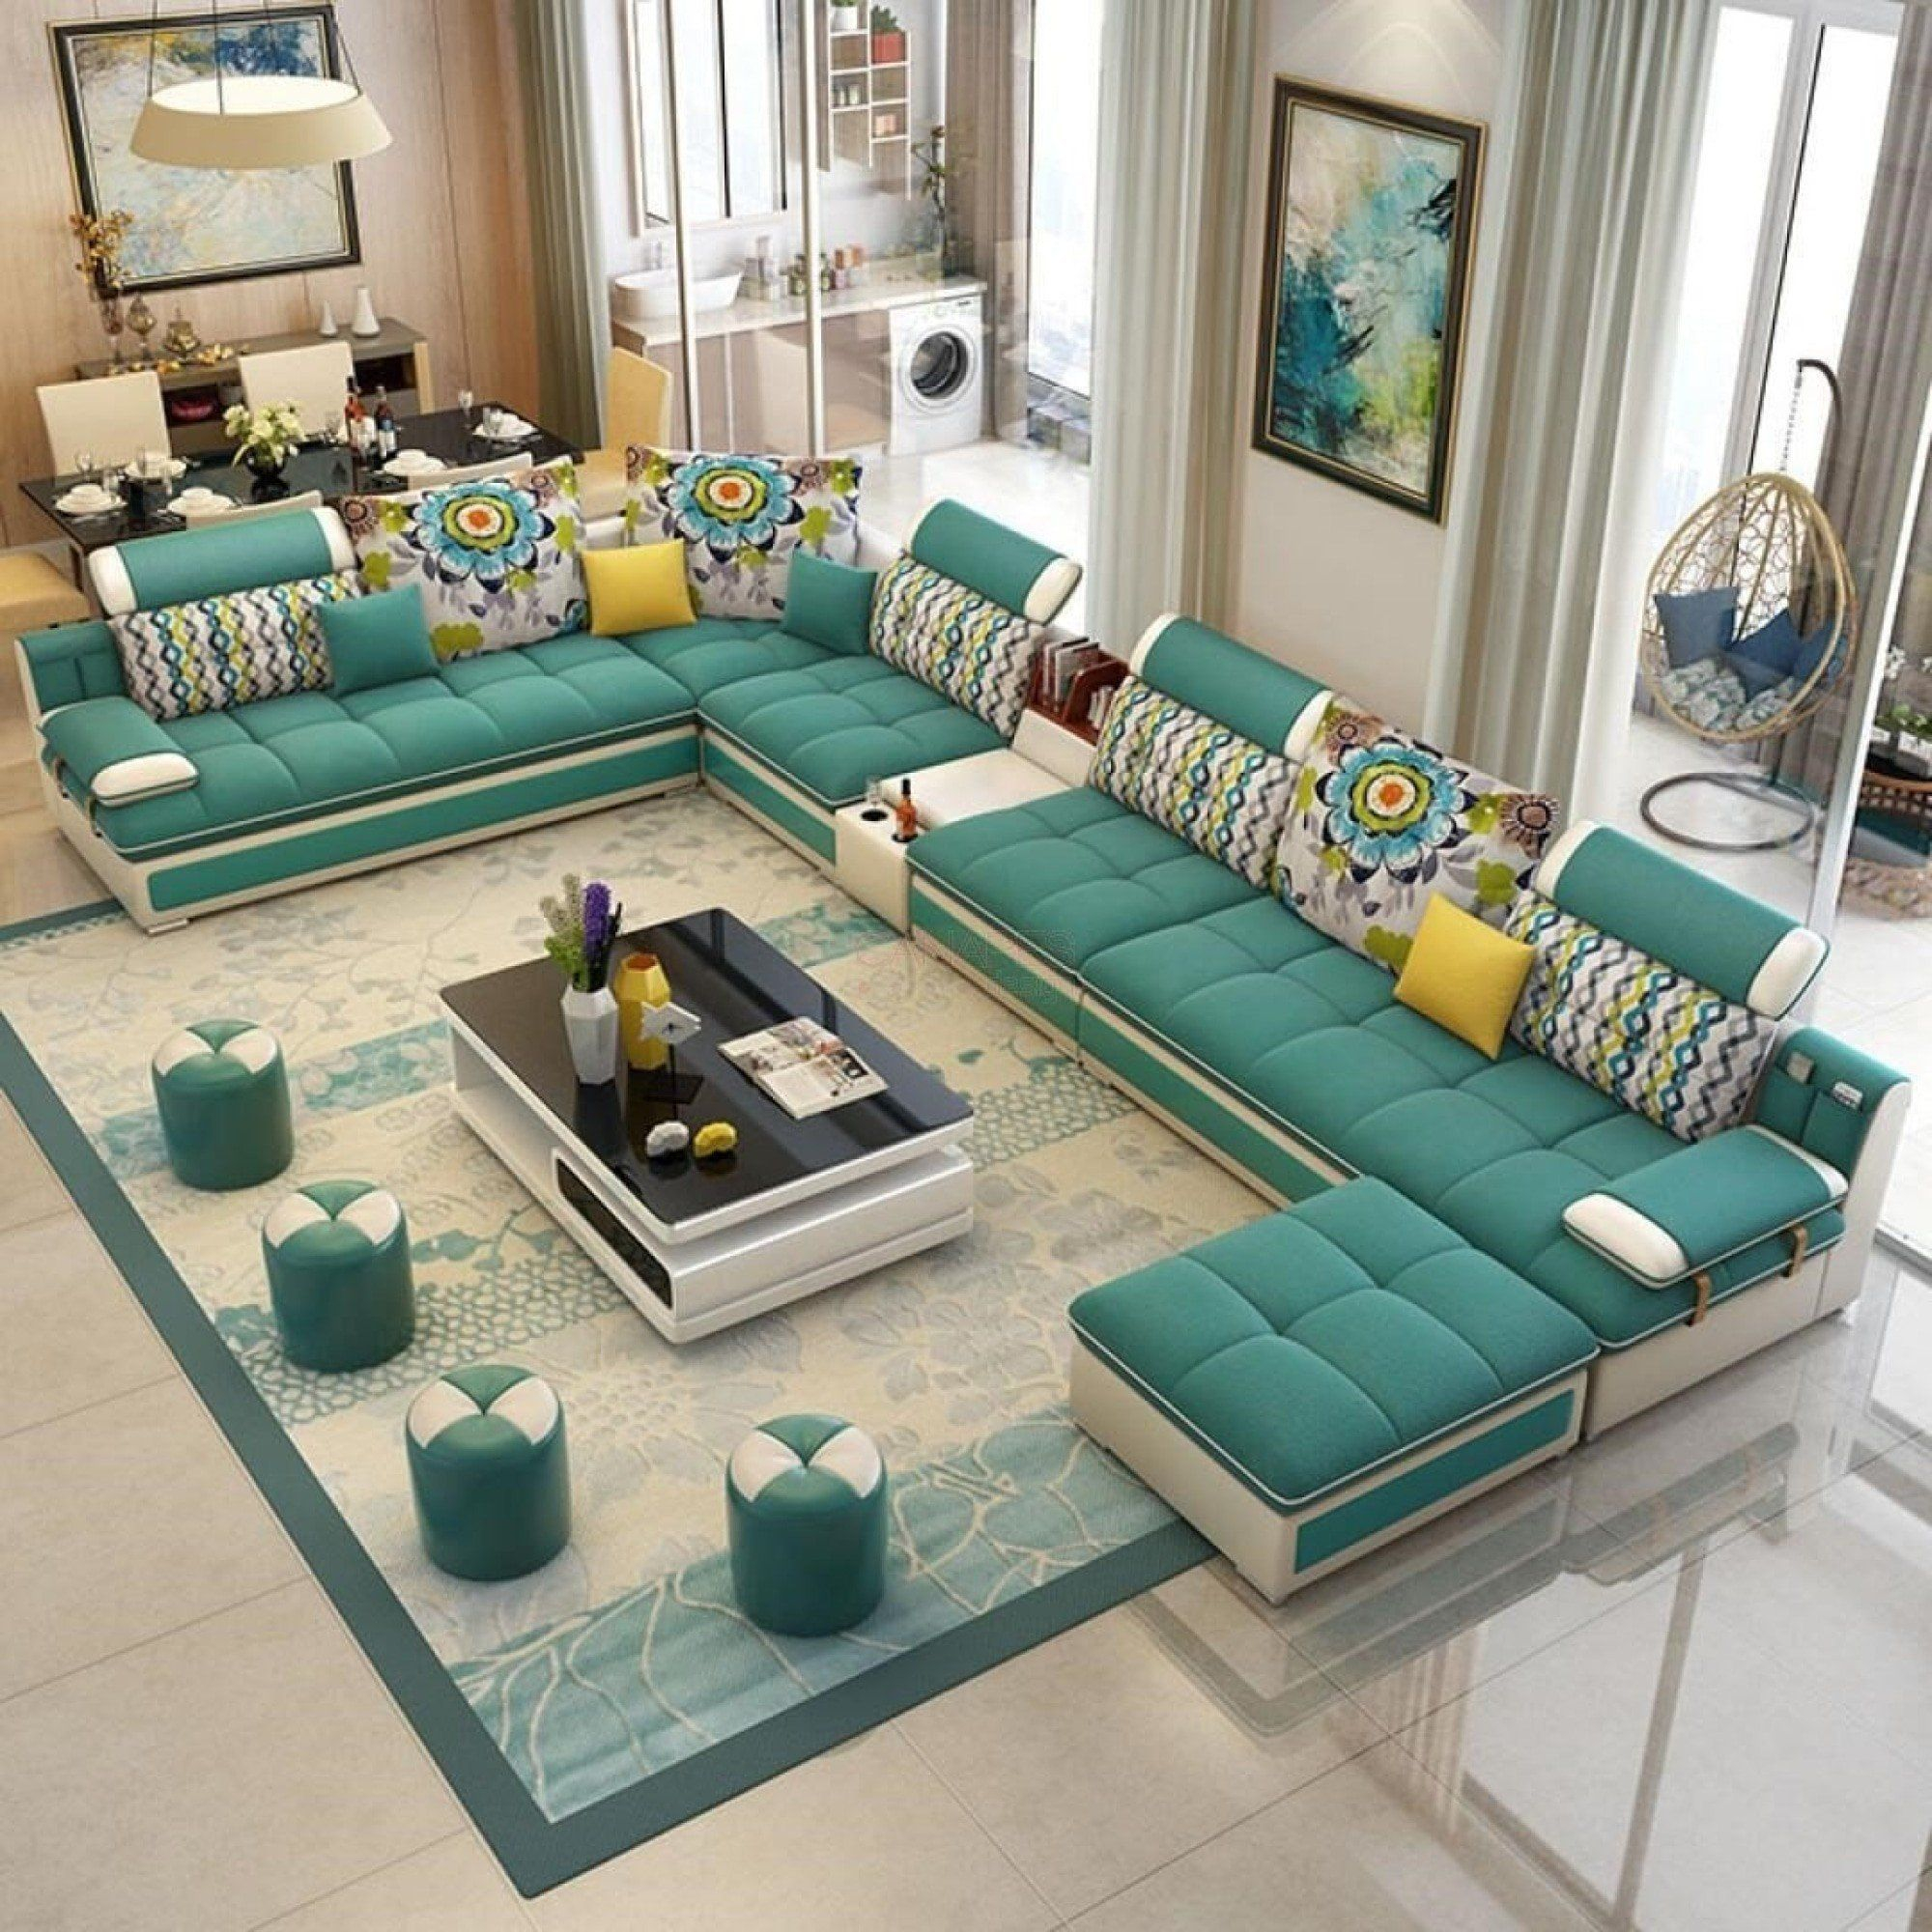 Lovely Living Room Sofa Design Ideas For Cozy Home To Try18